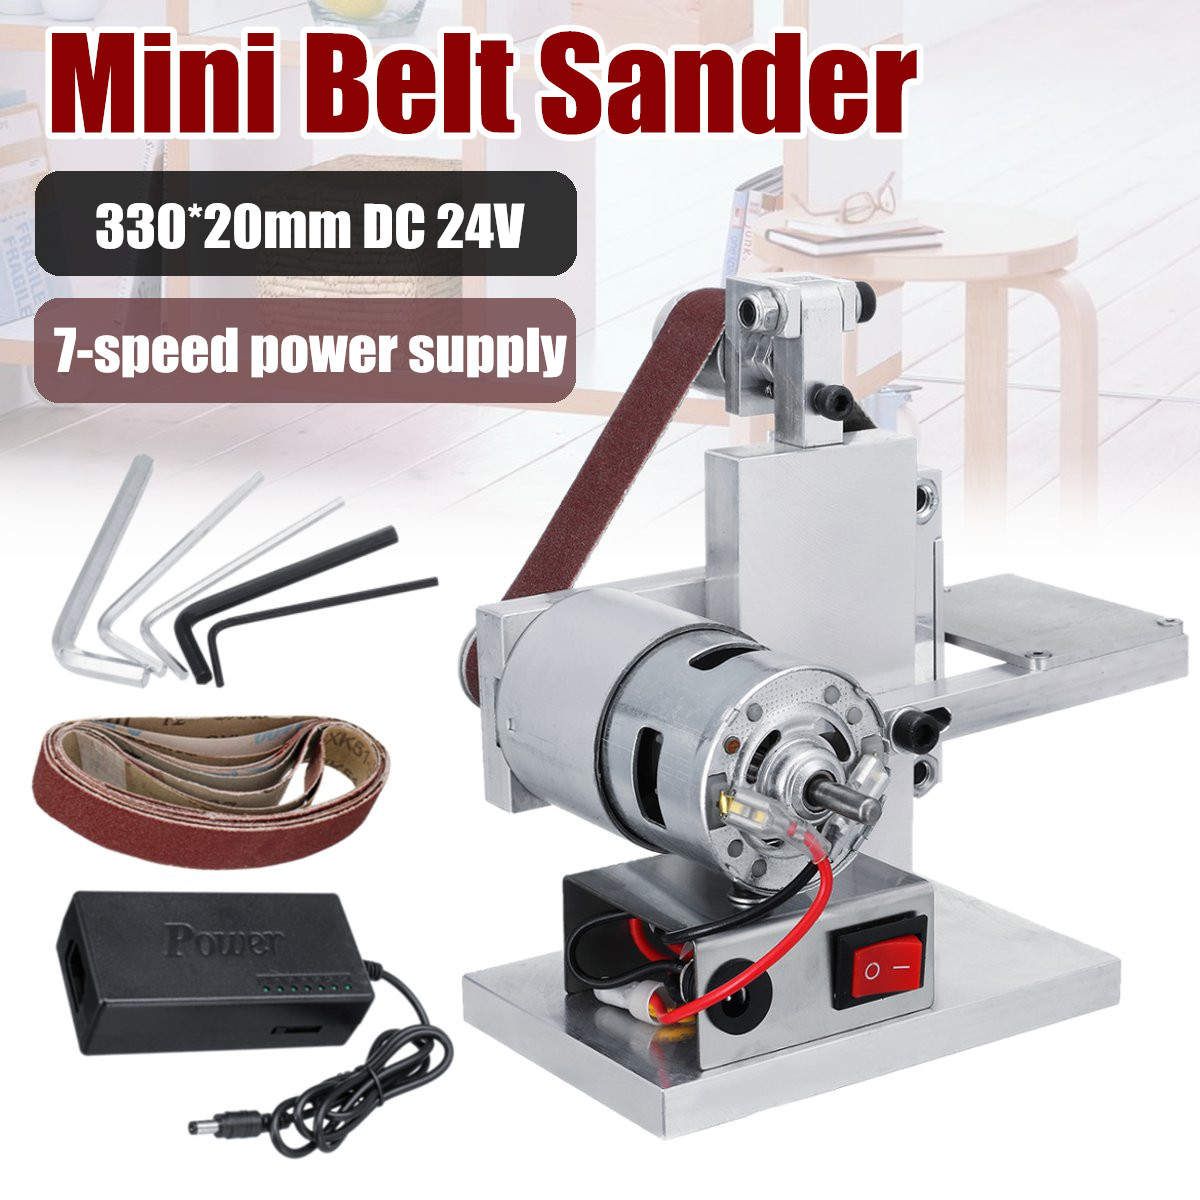 Diy Mini Belt Sander Machine Sanding Grinding Sharpening